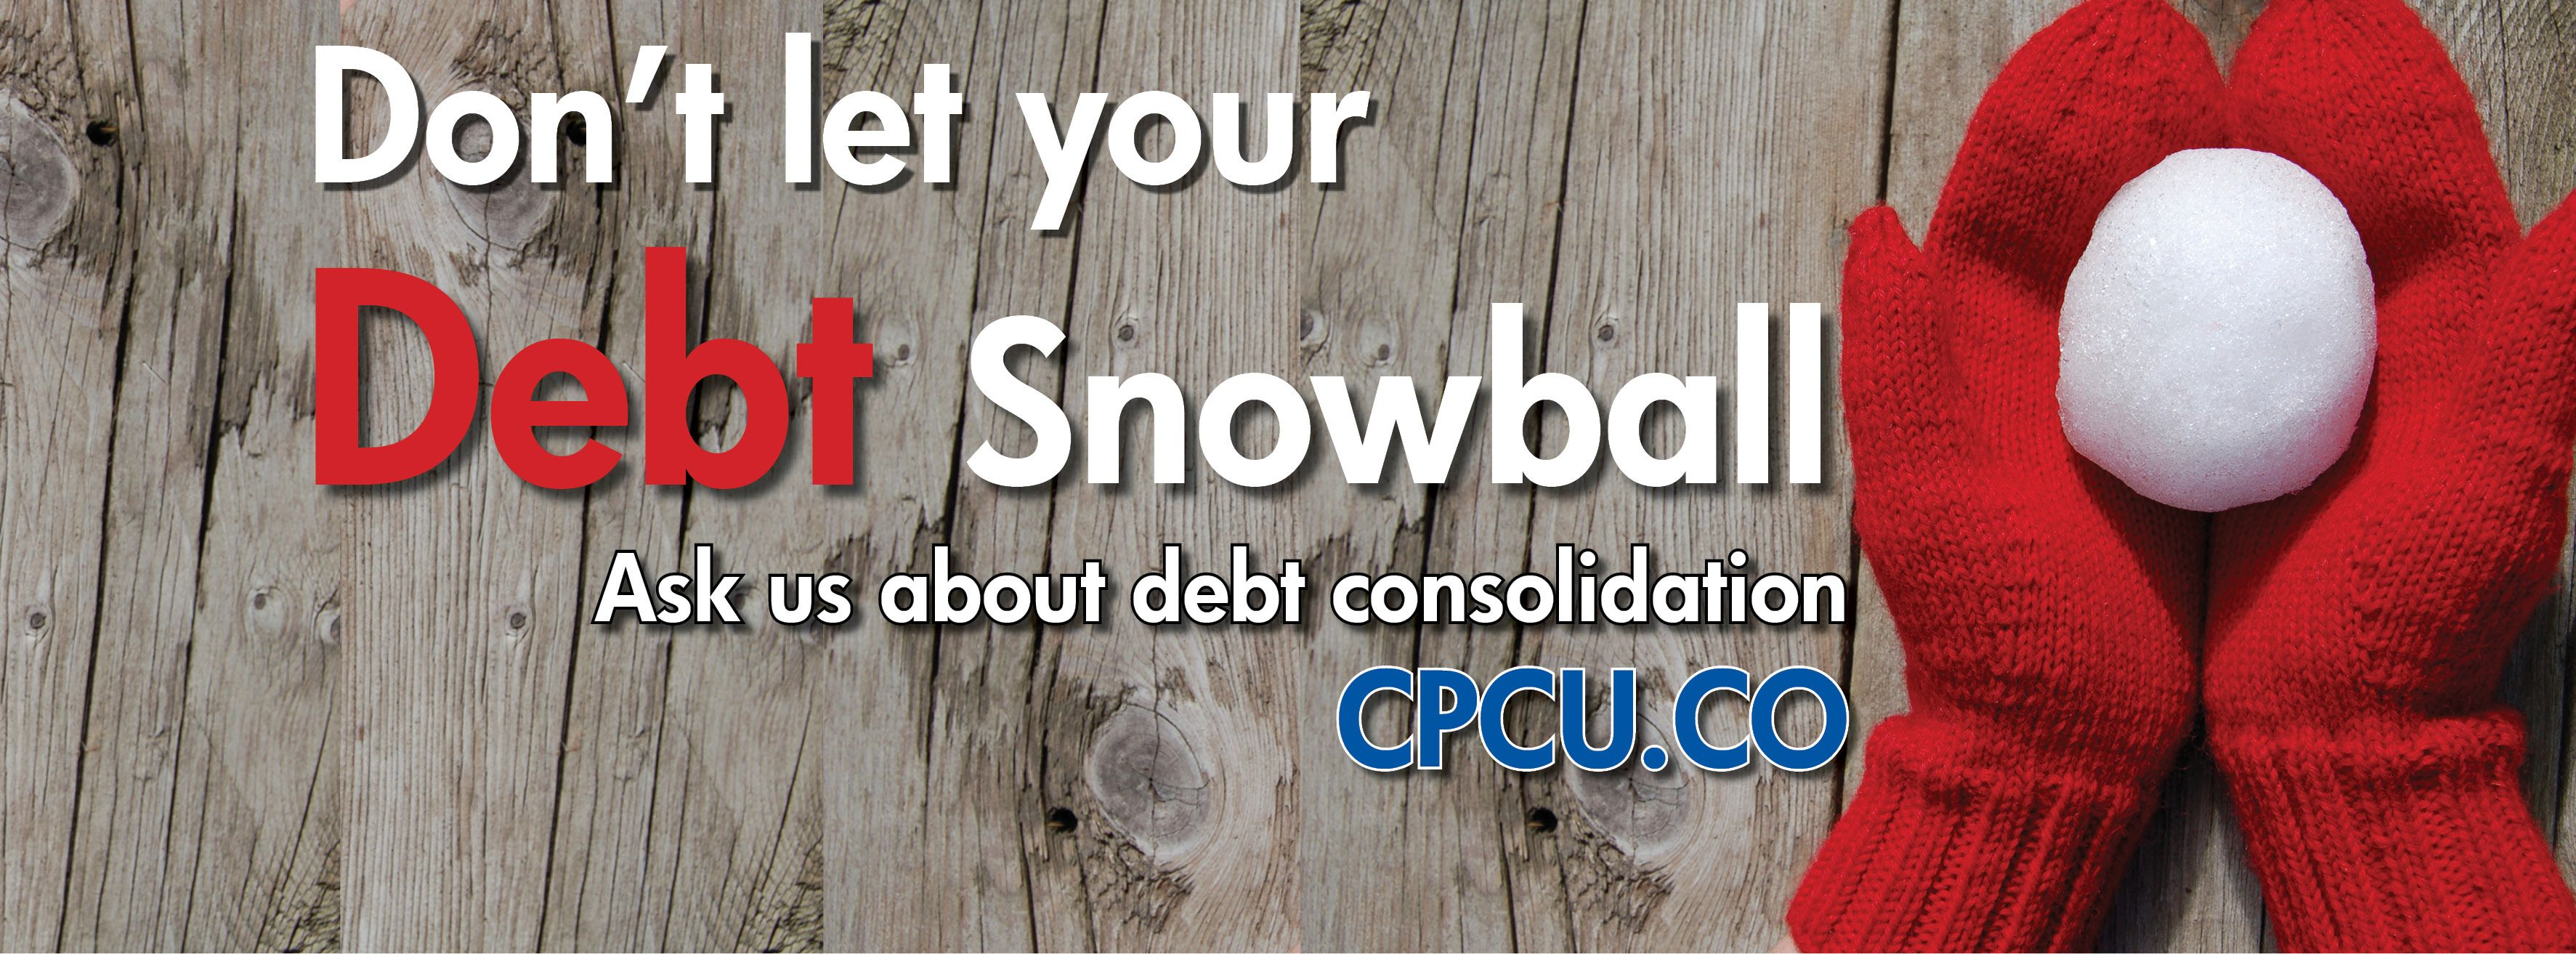 Pin by Consumers Professional Credit Union on CPCU